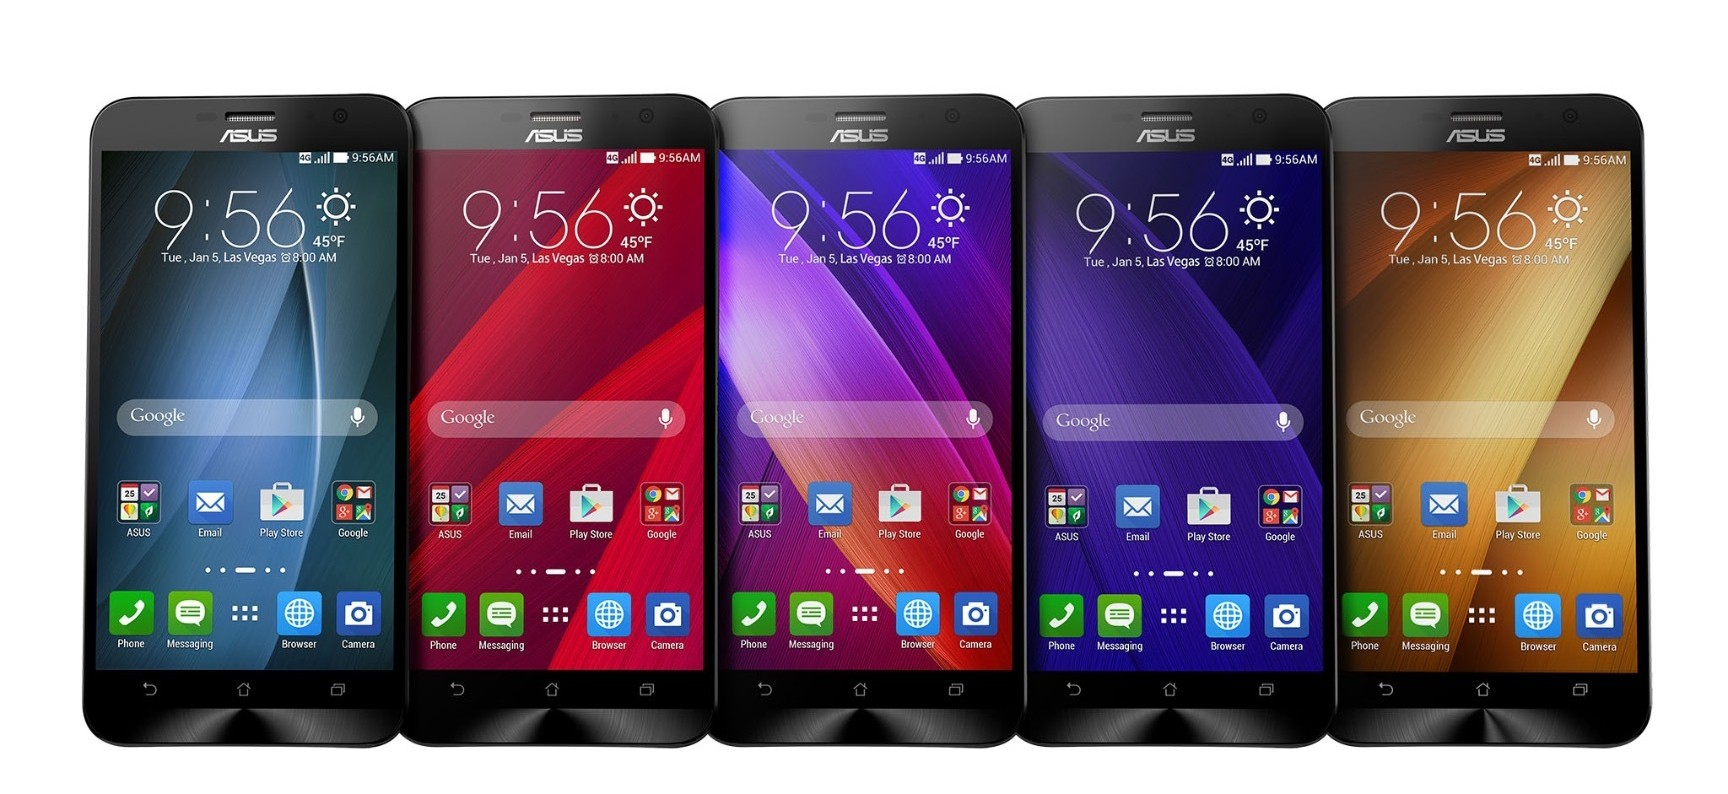 Asus Zenfone 2 analisis español-Android